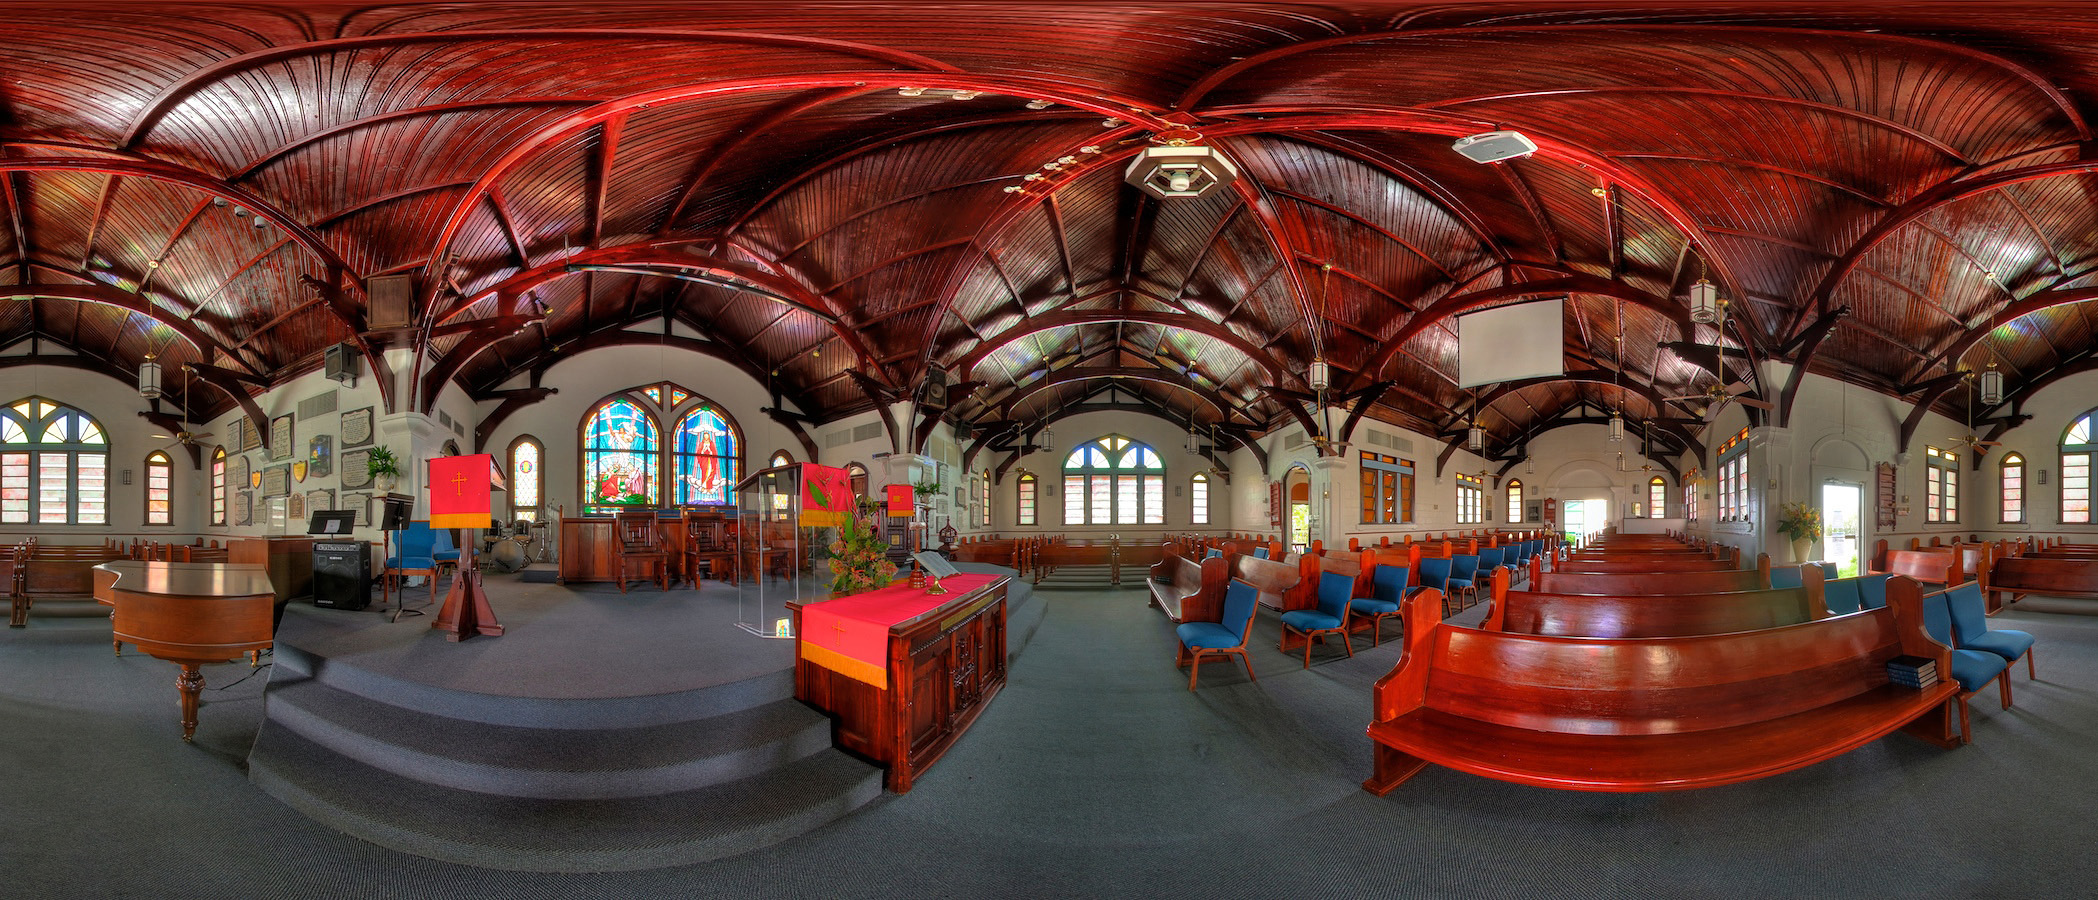 Elmslie Memorial United Church Grand Cayman Islands by Johan Deysel